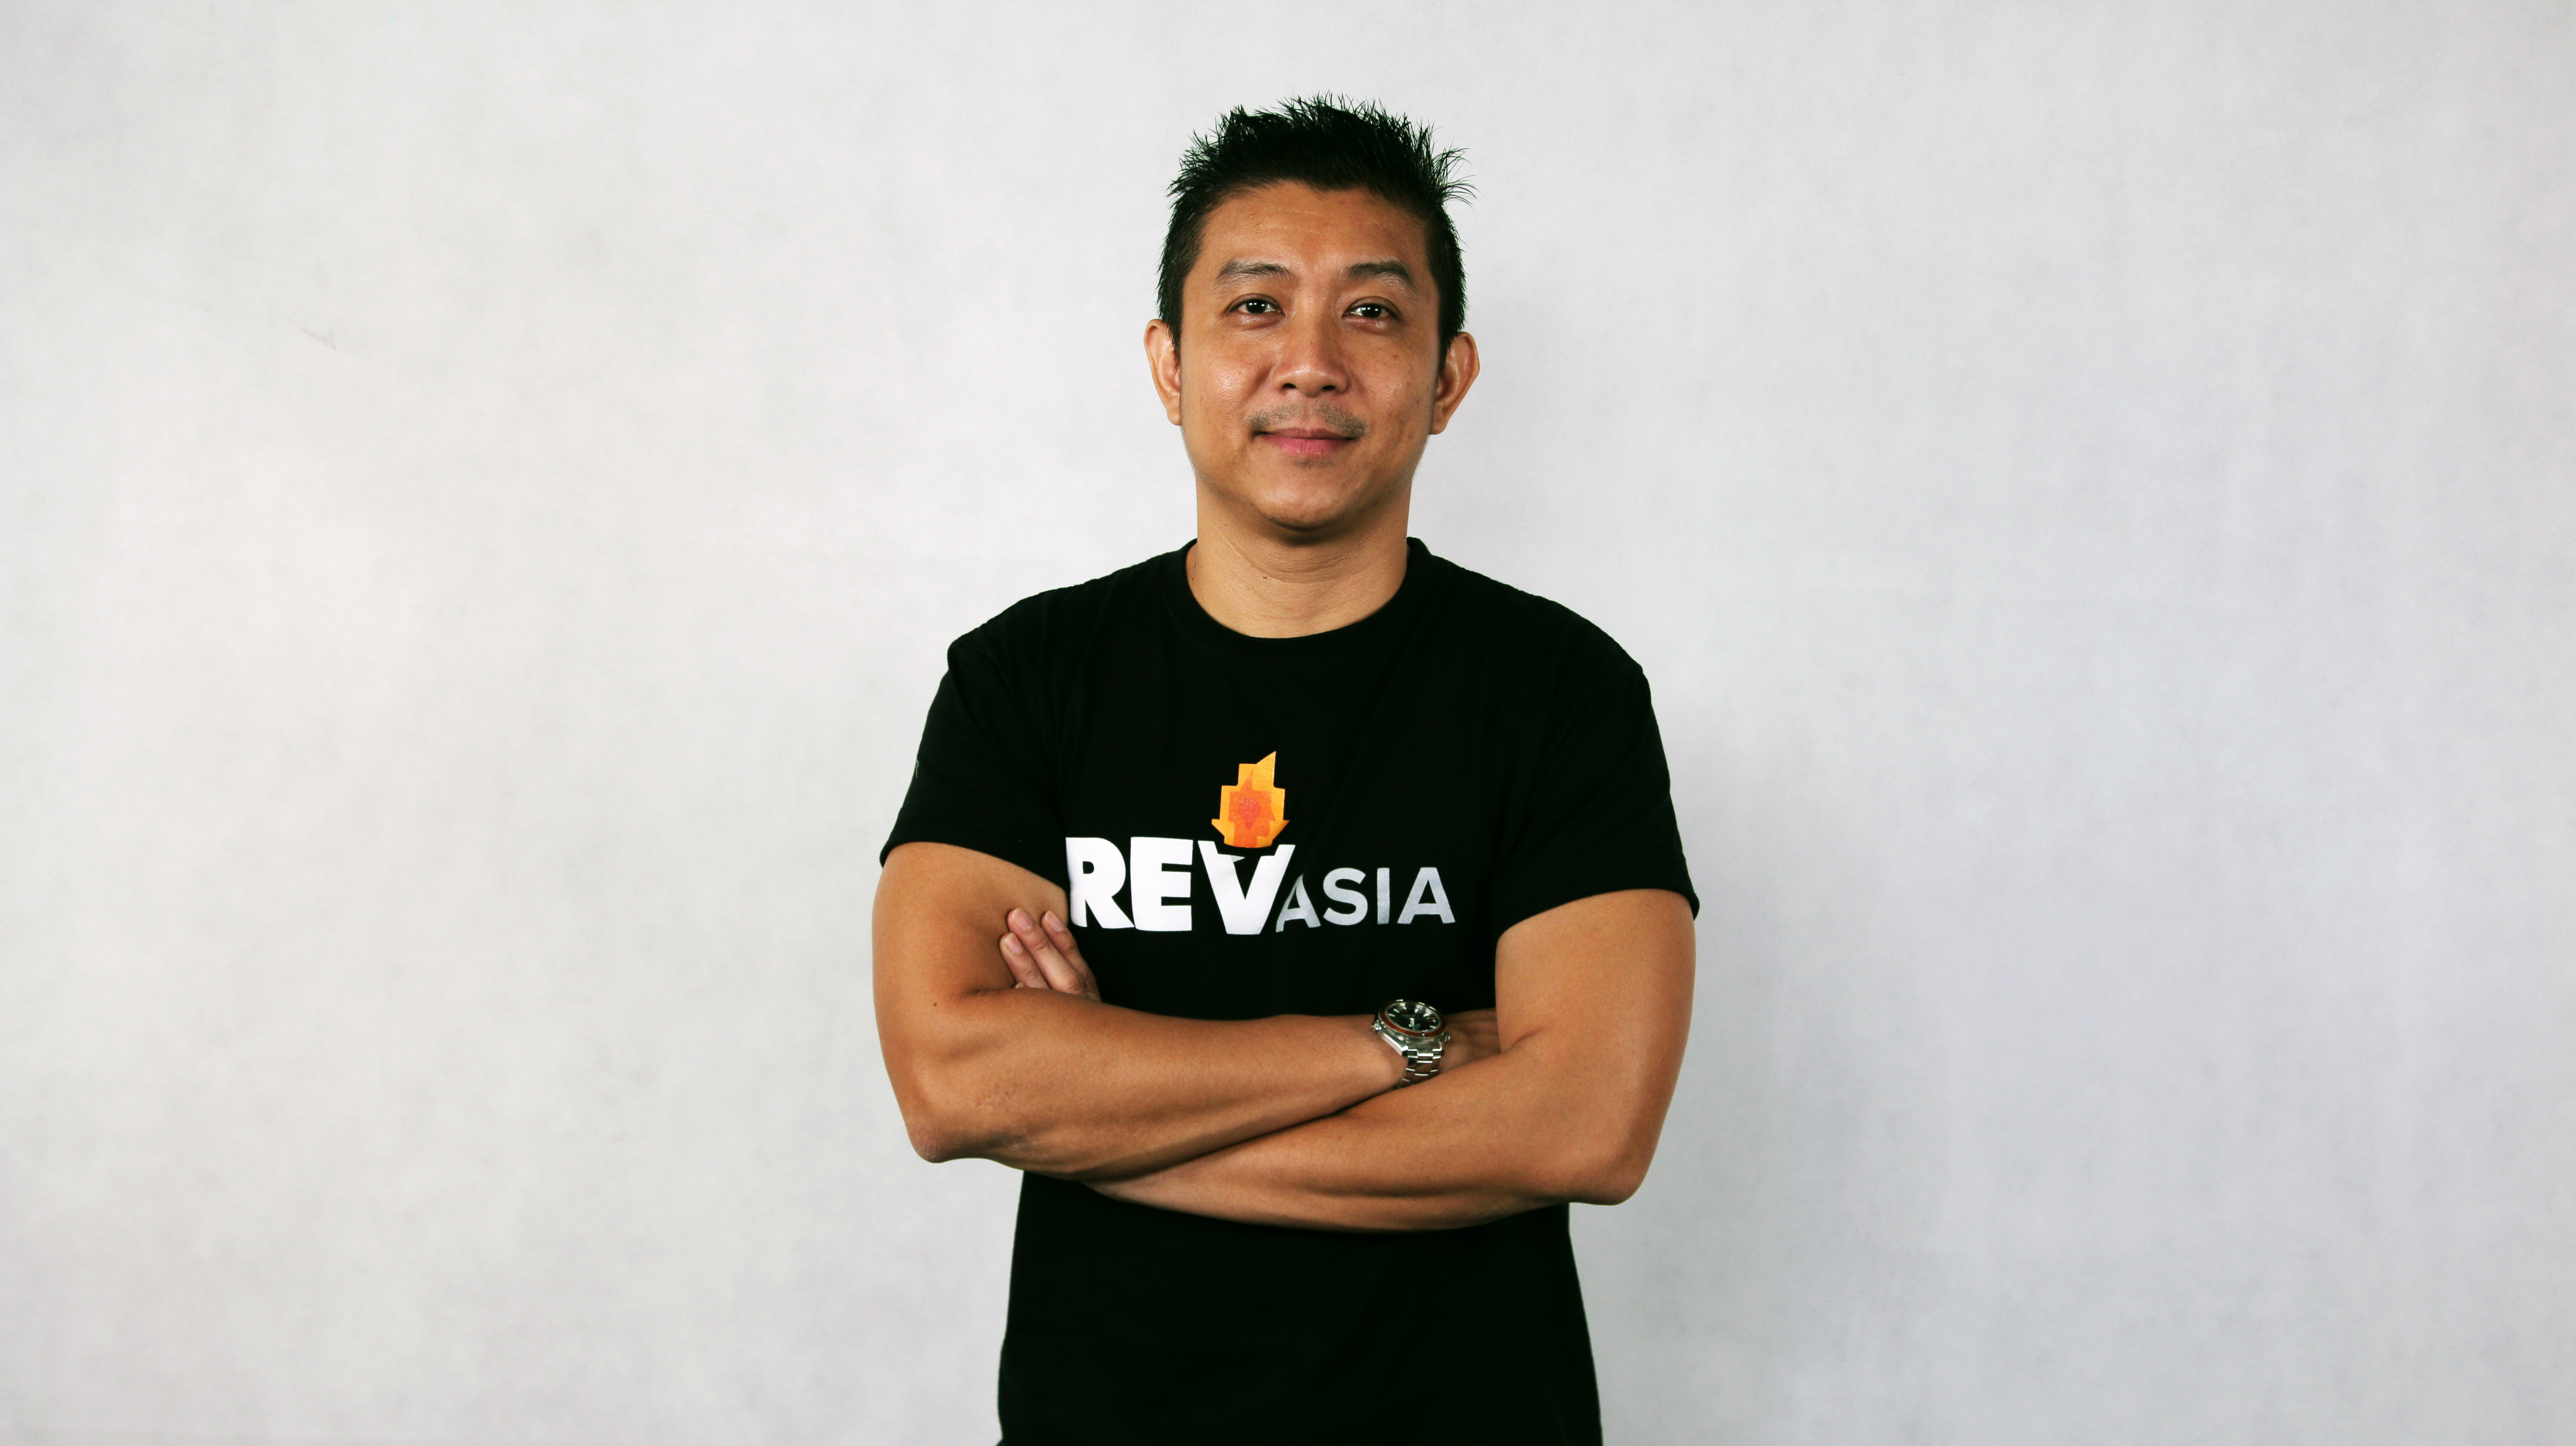 Image from Rev Asia